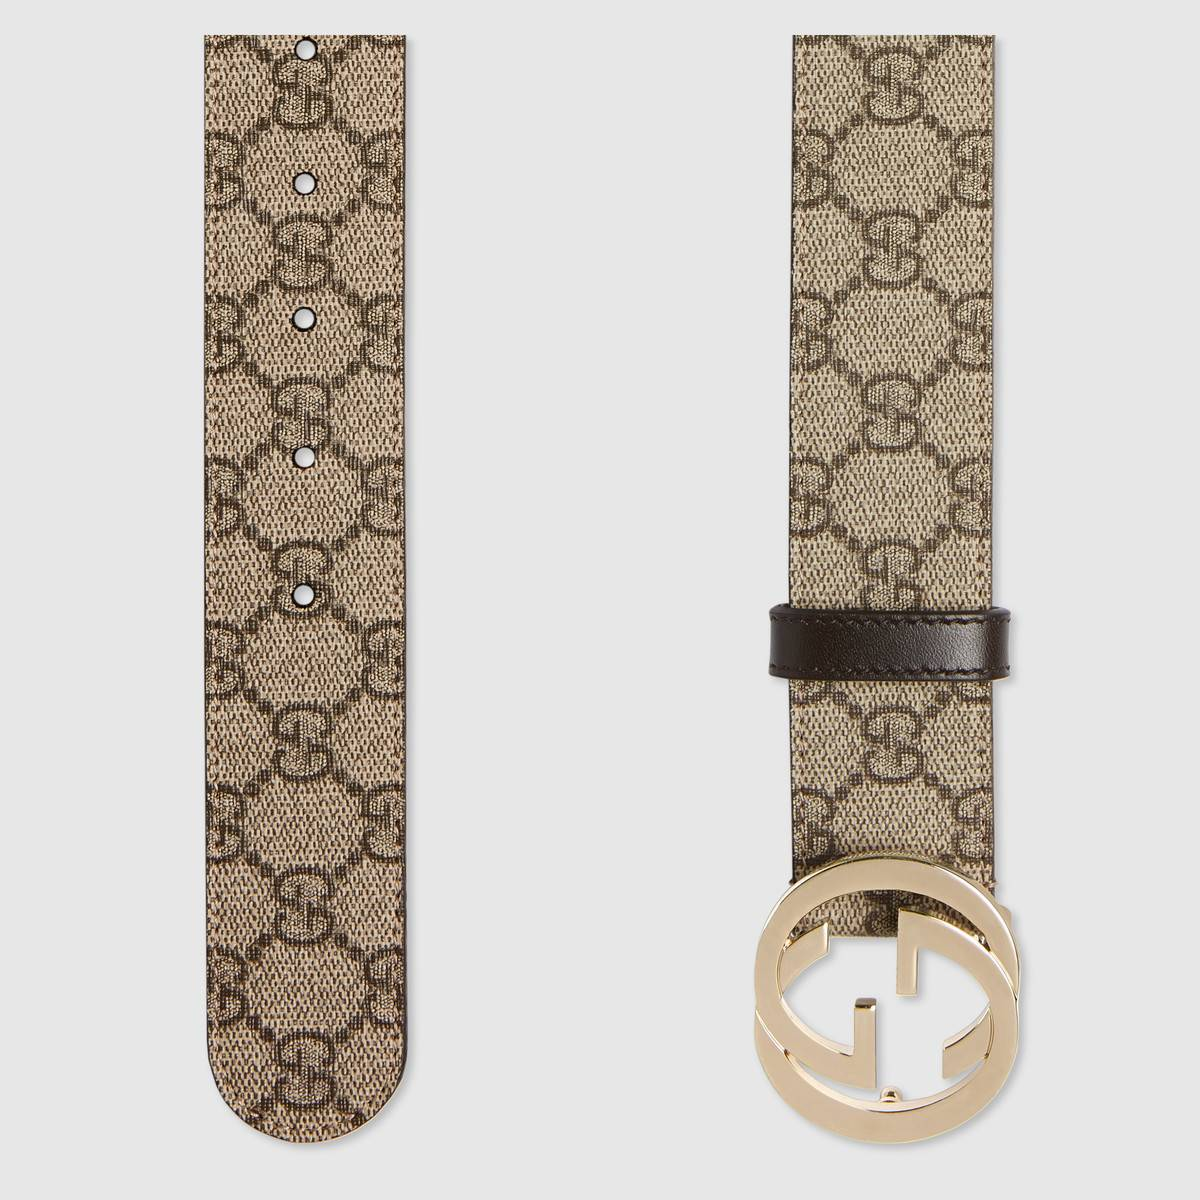 08ee33f464bfb6 Load image into Gallery viewer, GUCCI GG SUPREME BELT WITH G BUCKLE -  5starclothing.